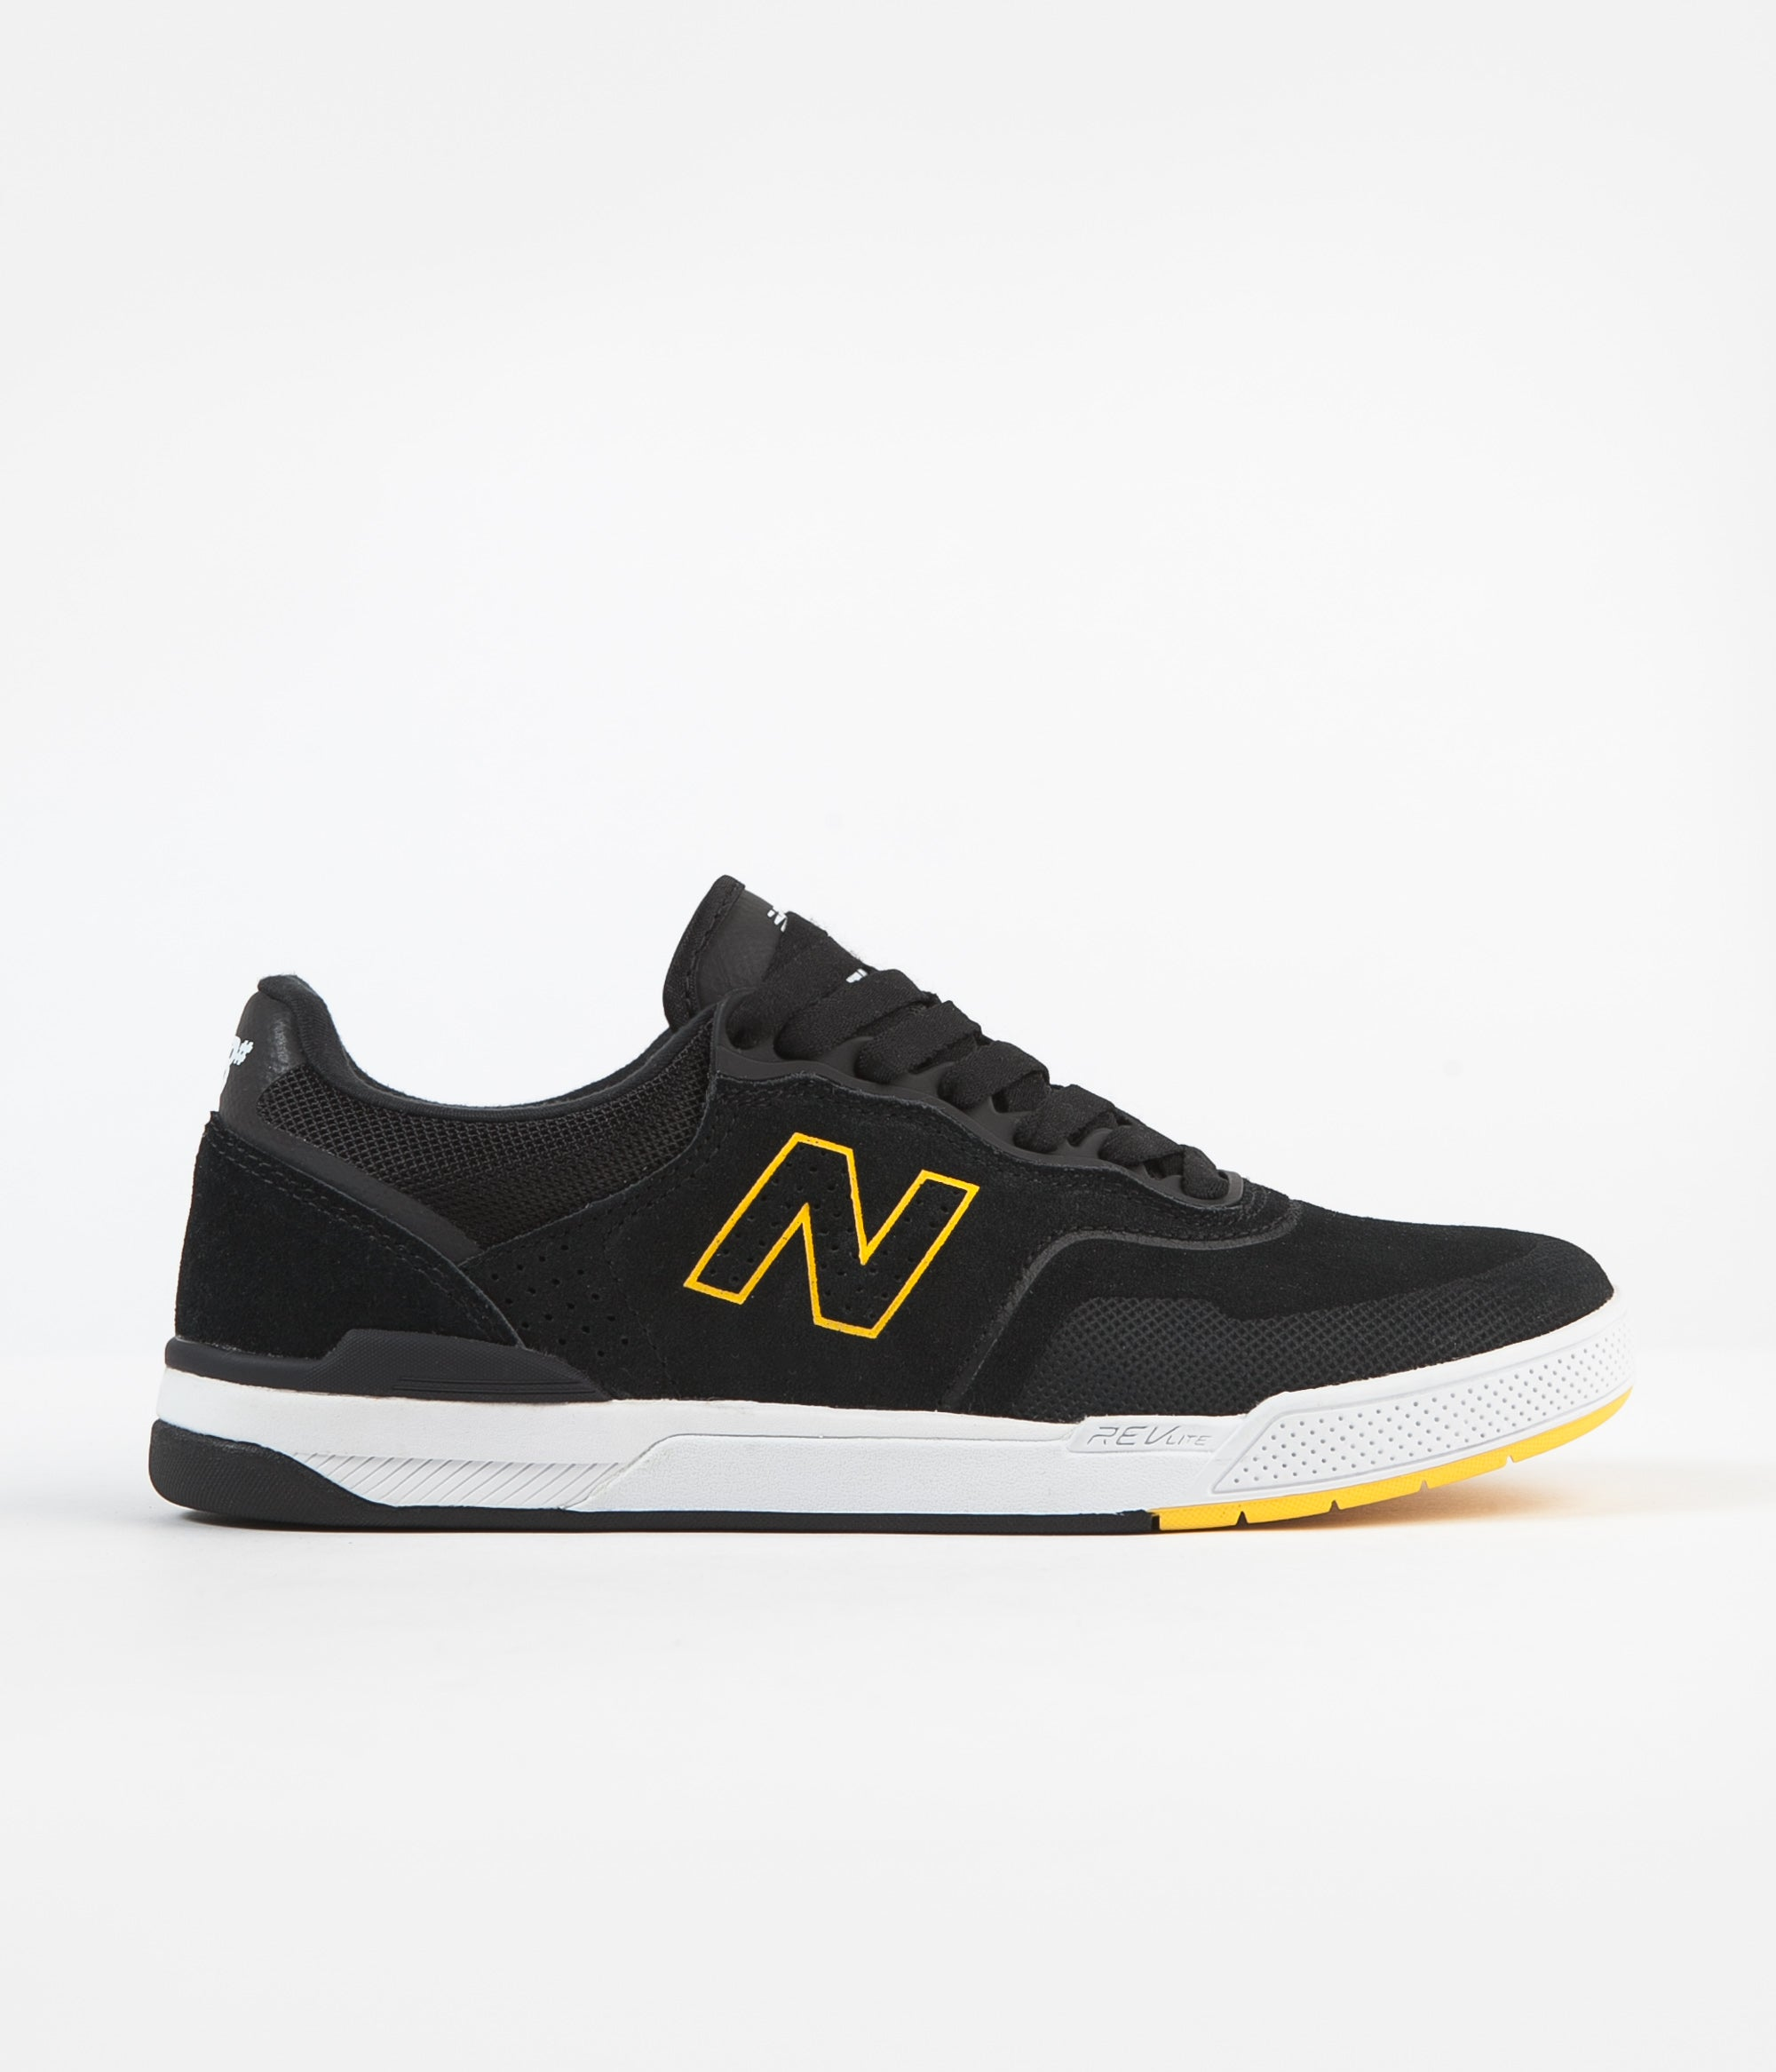 New Balance Numeric 913 Westgate Shoes - Black / Yellow